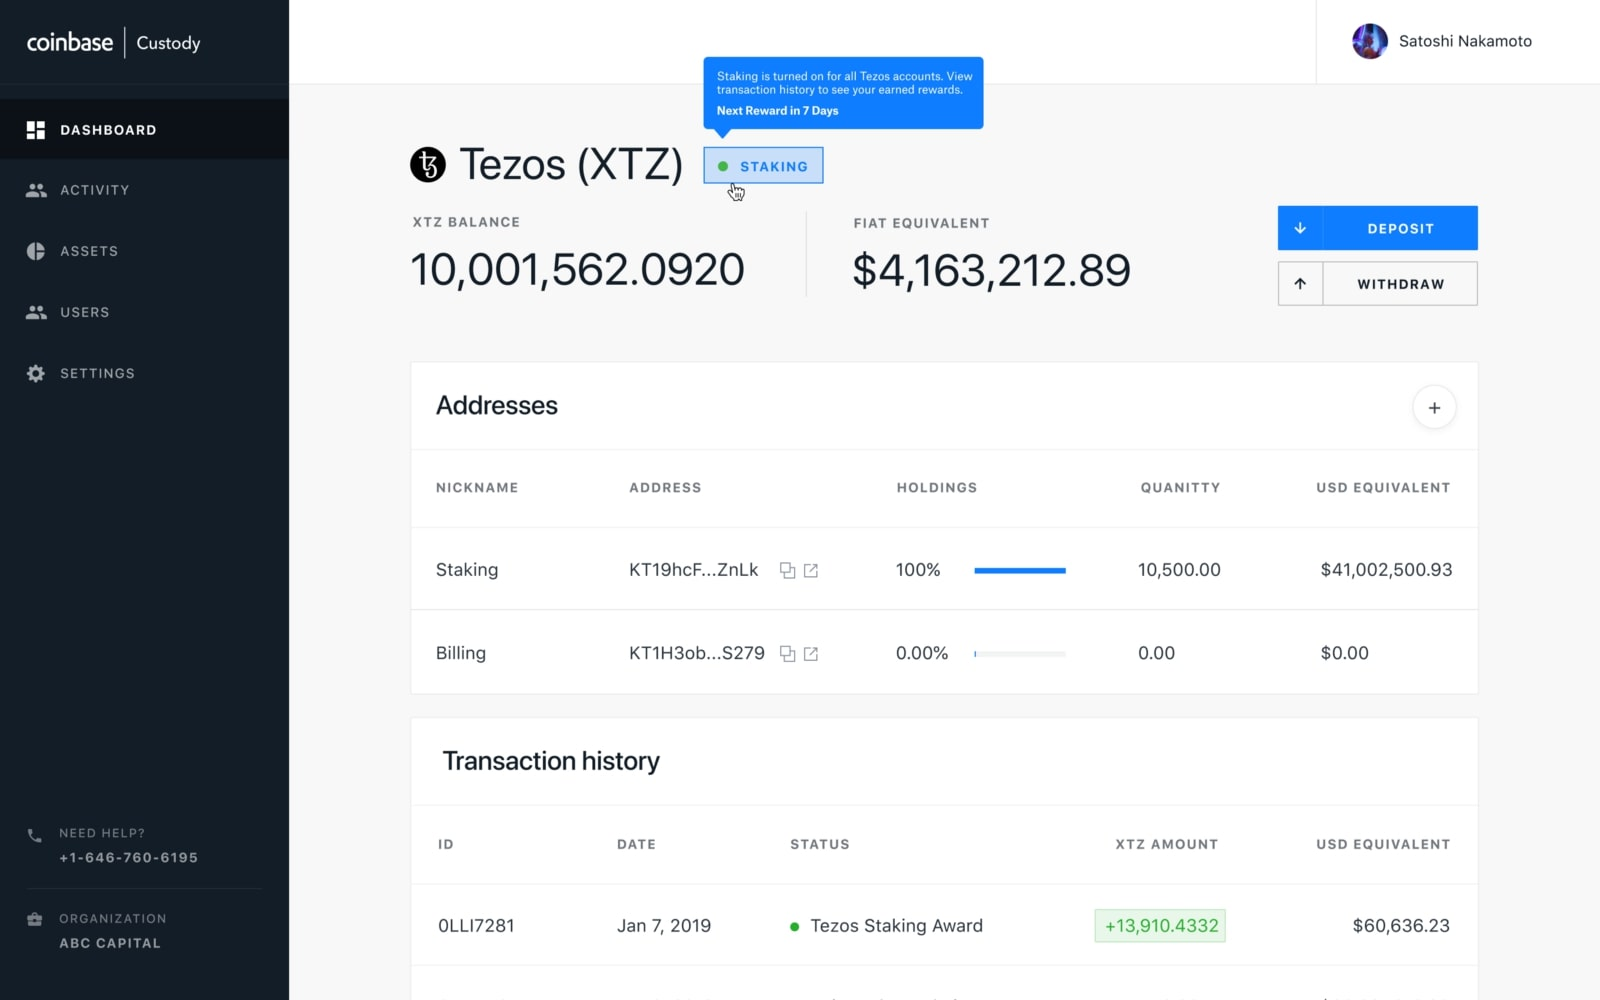 Coinbase Custody launches staking support for Tezos and MakerDAO